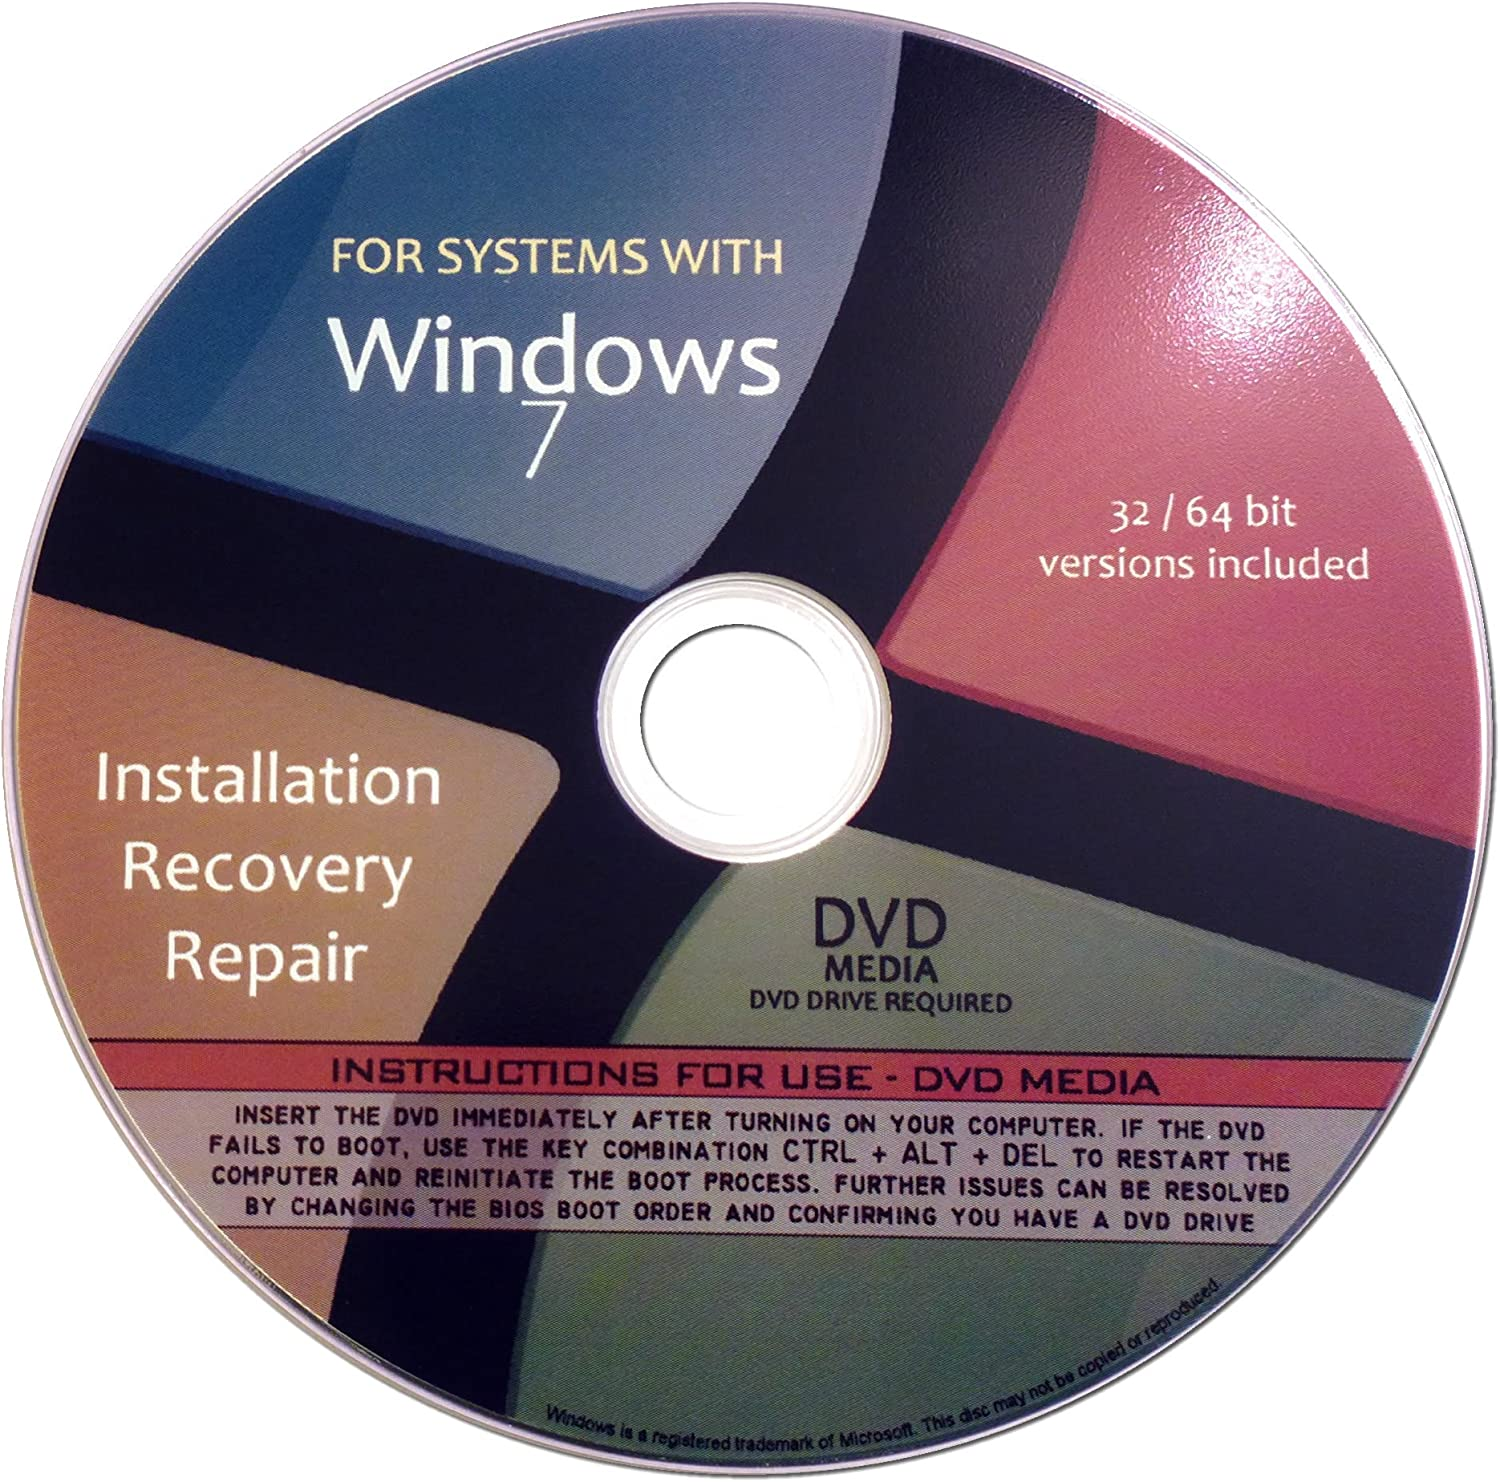 Windows 7 All in One (Starter, Home Basic, Home Premium, Professional, Ultimate) 32/64 Bit Repair, Recovery, Restore, Re-install DVD